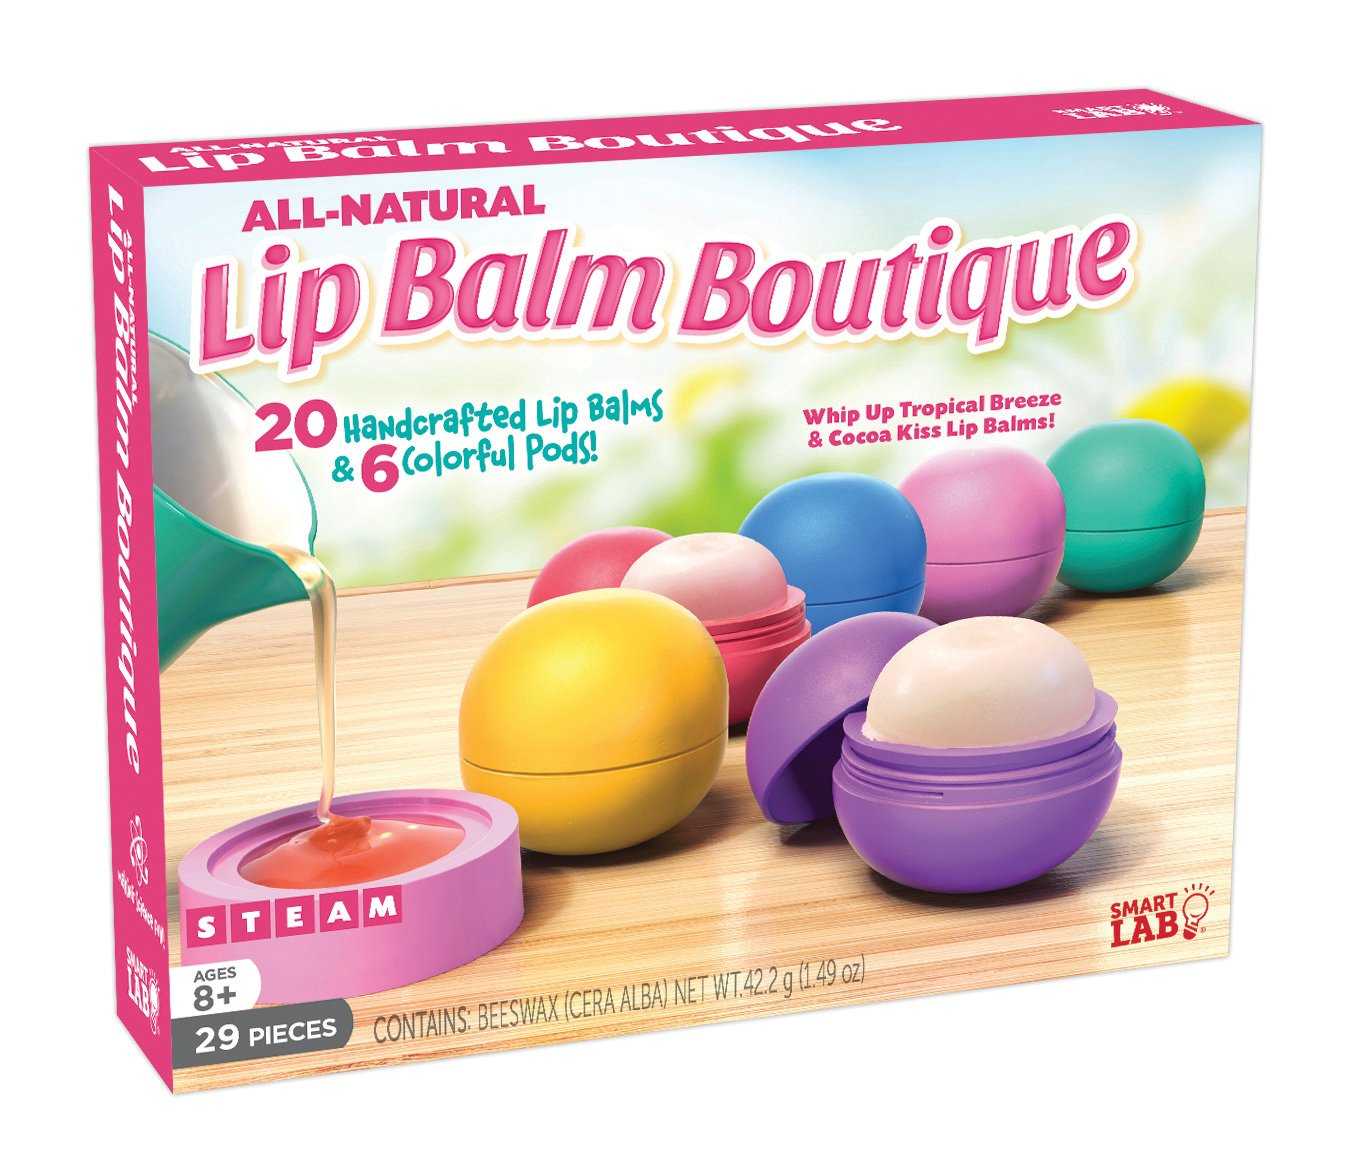 SmartLab Toys All-Natural Lip Balm Boutique by The Quarto Group